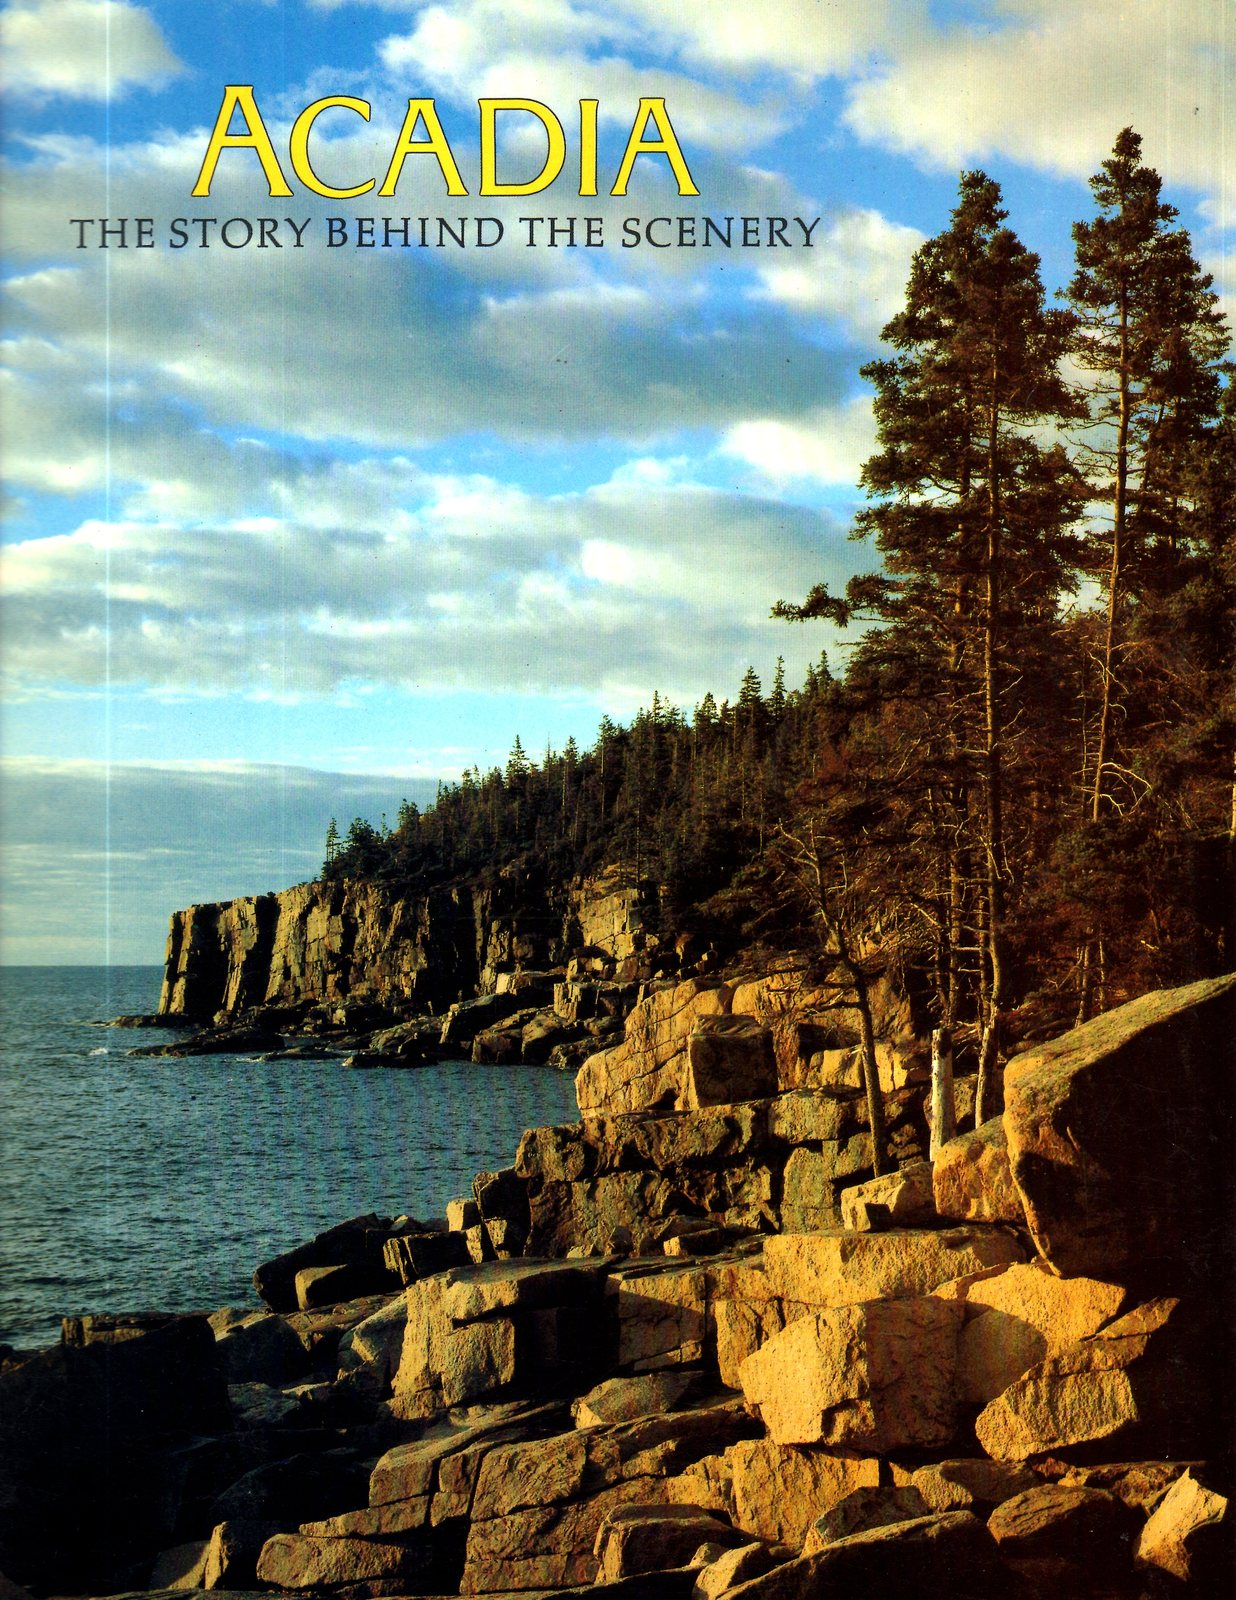 ACADIA The Story Behind The Scenery (Travel Book)